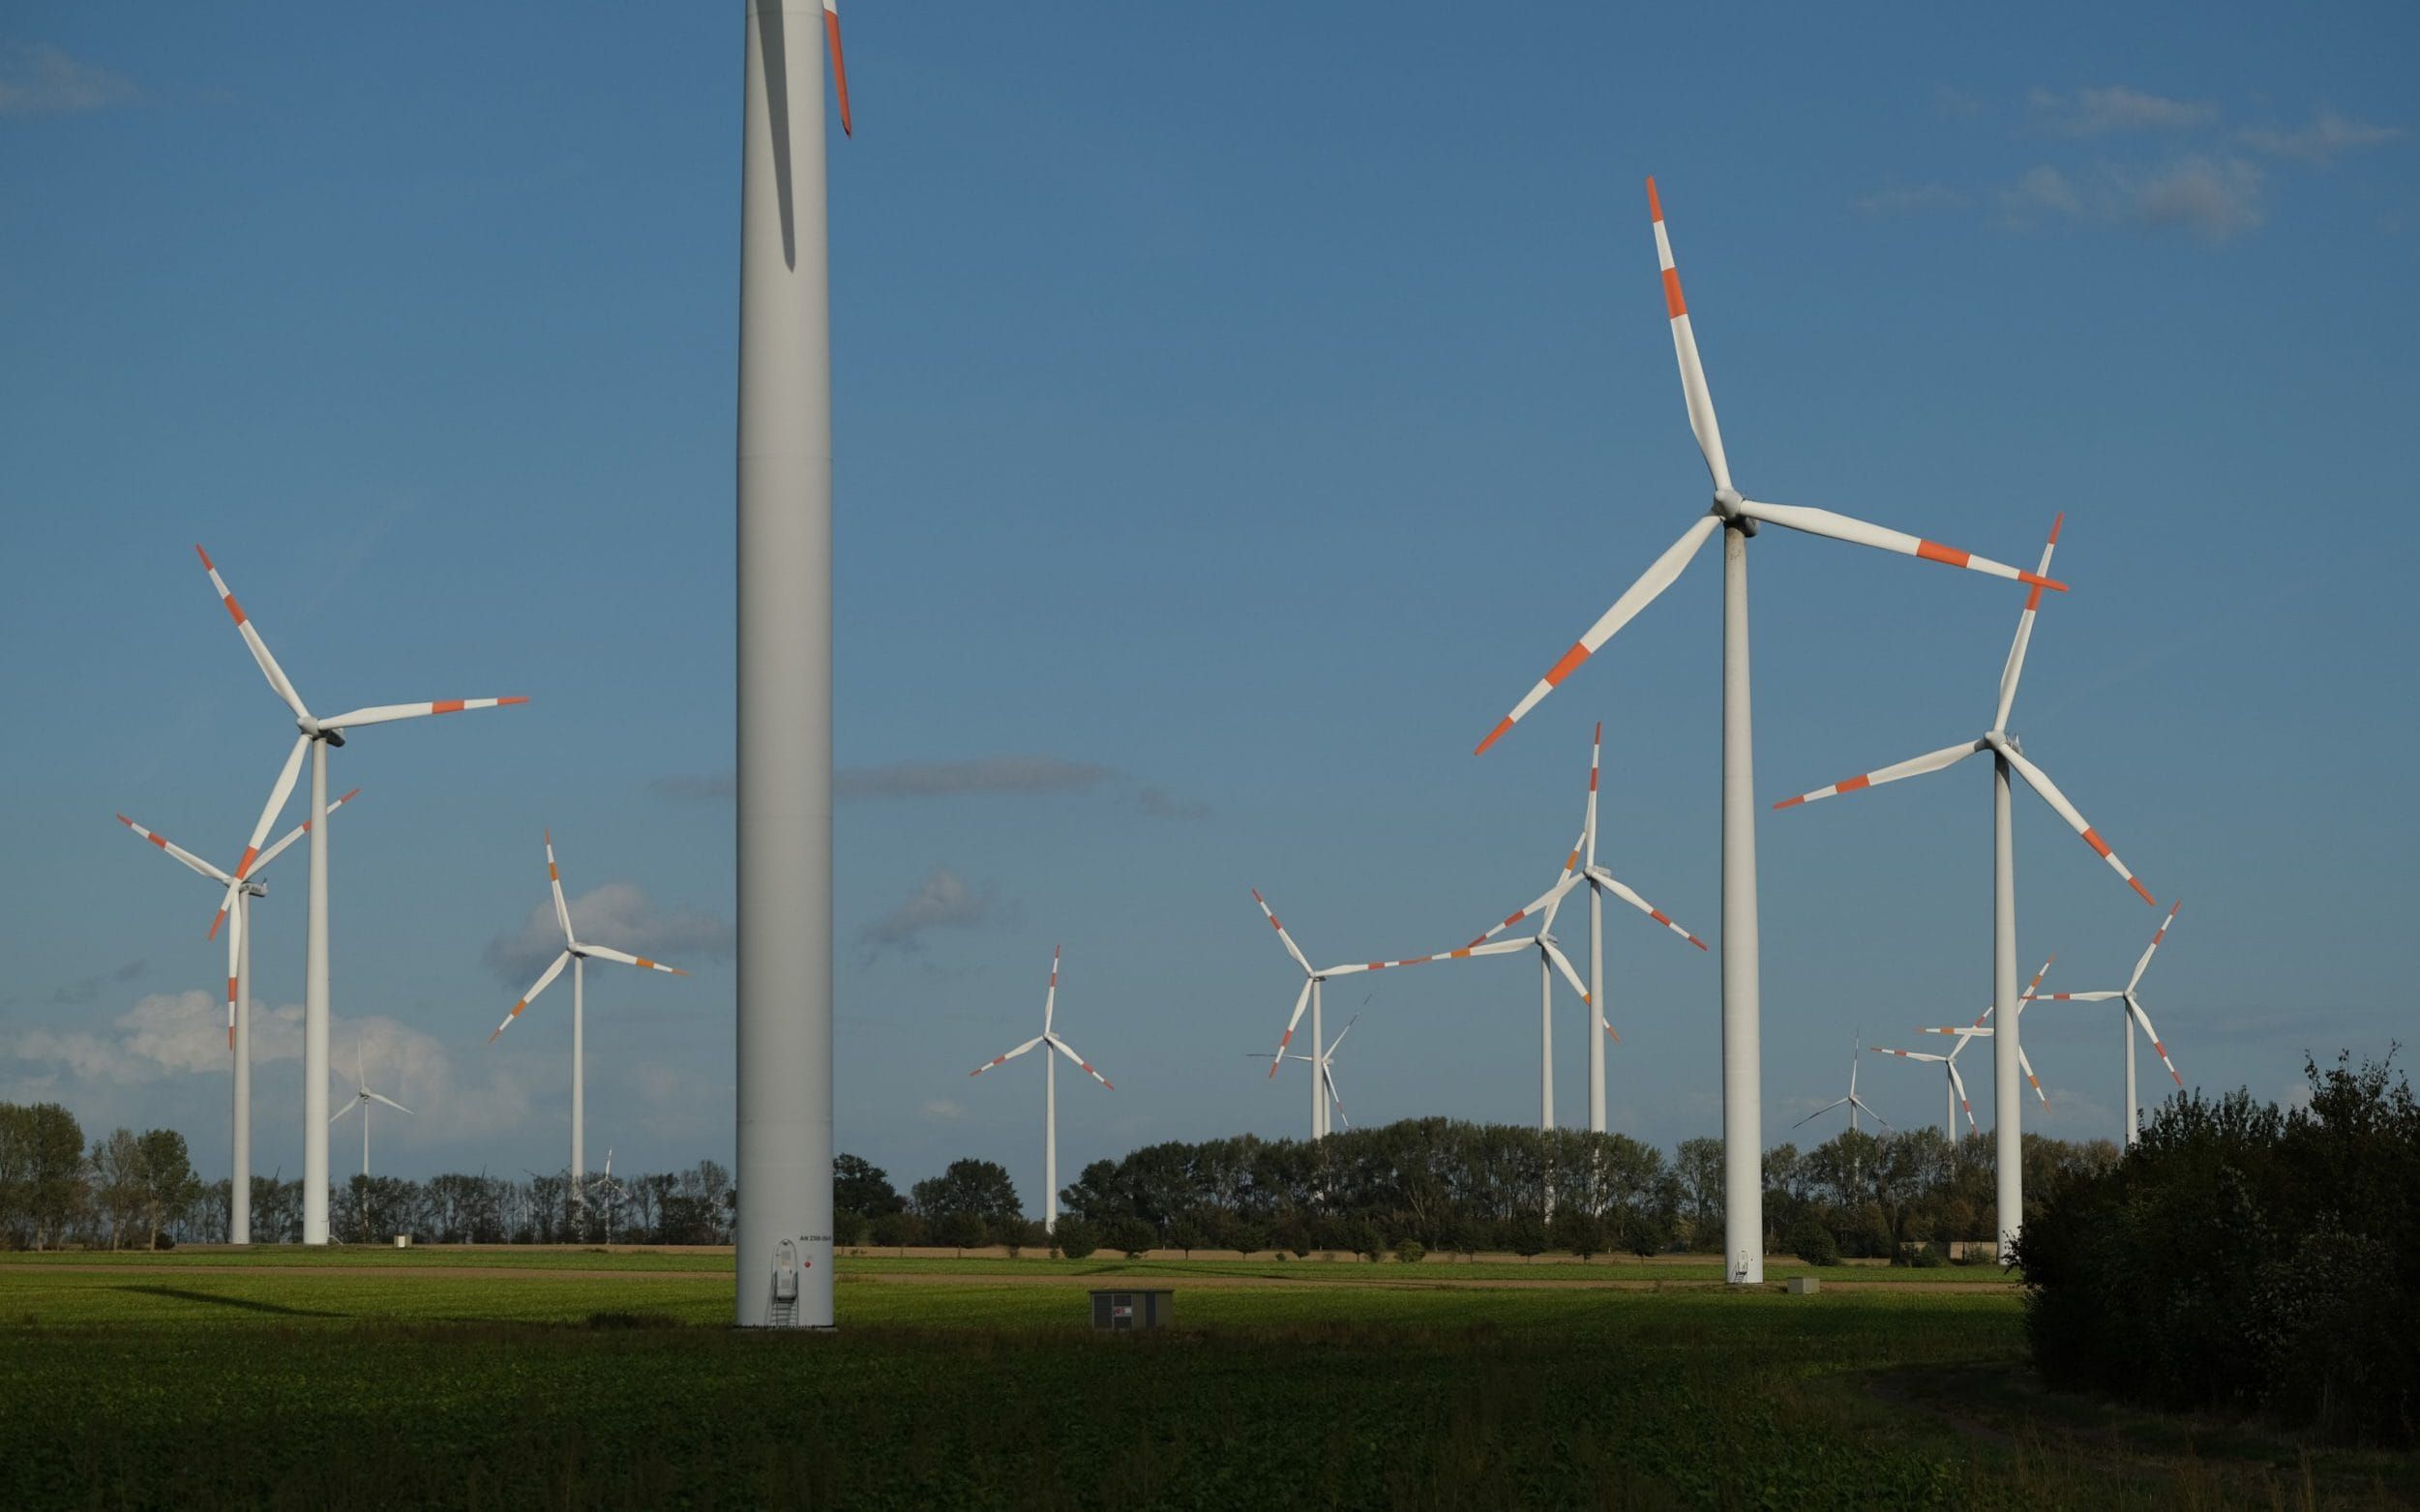 Germans who live near wind turbines should be paid compensation, says government minister